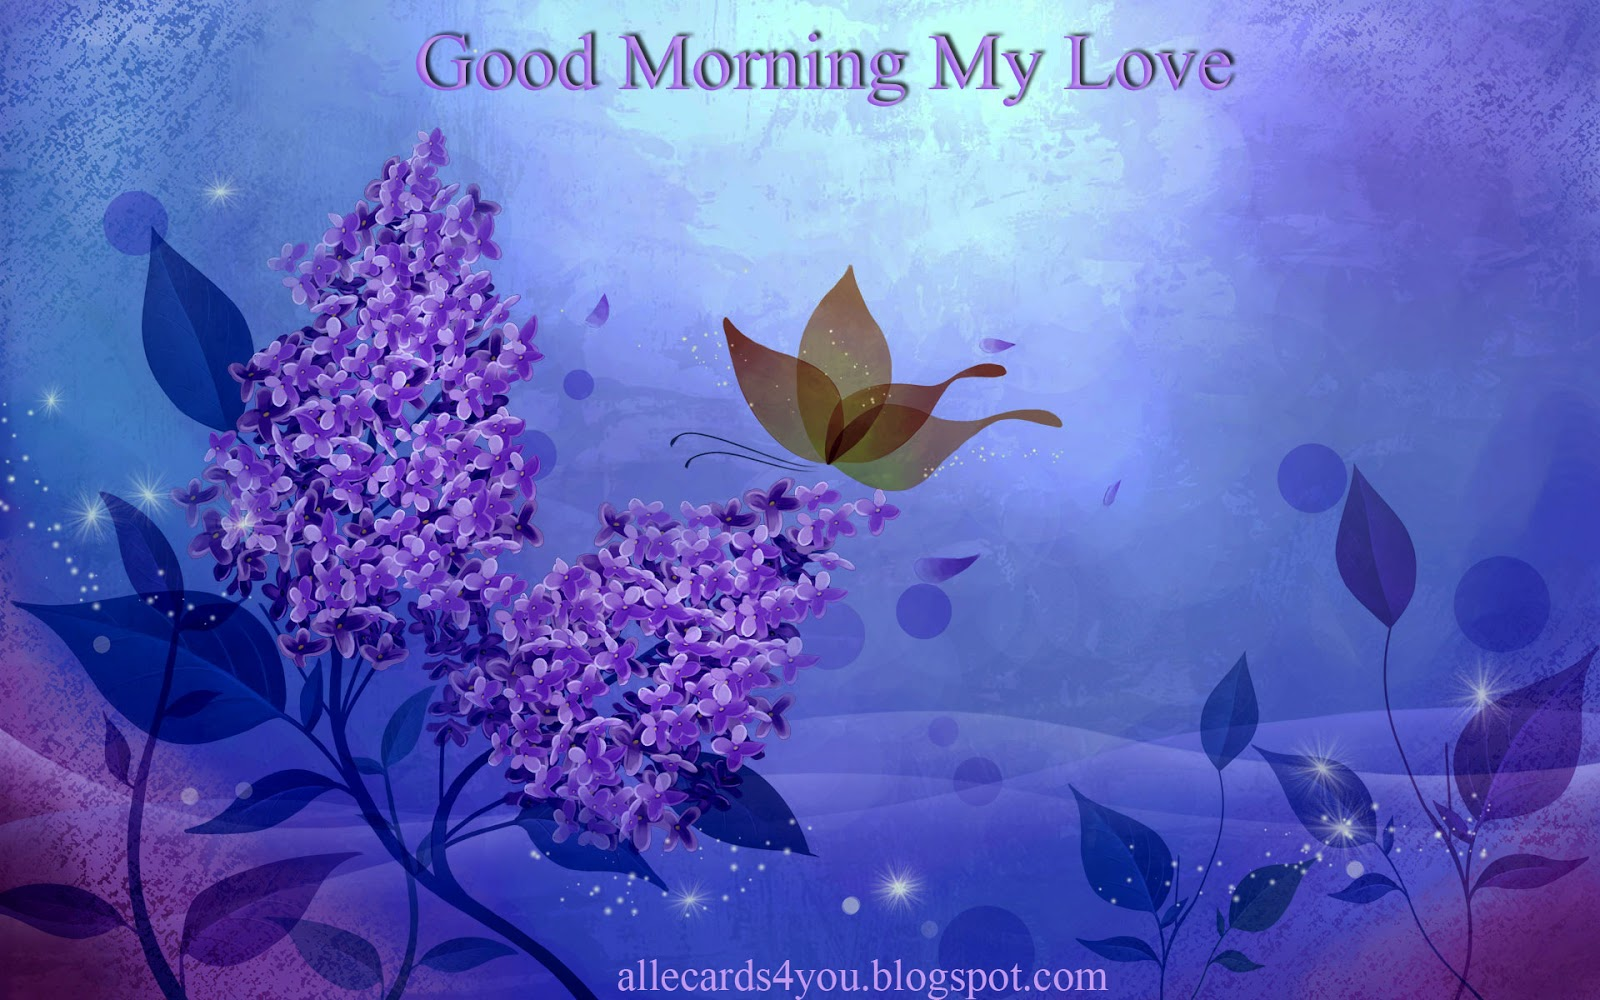 1838475761-good_morning_love_good_morning_my_love.jpg